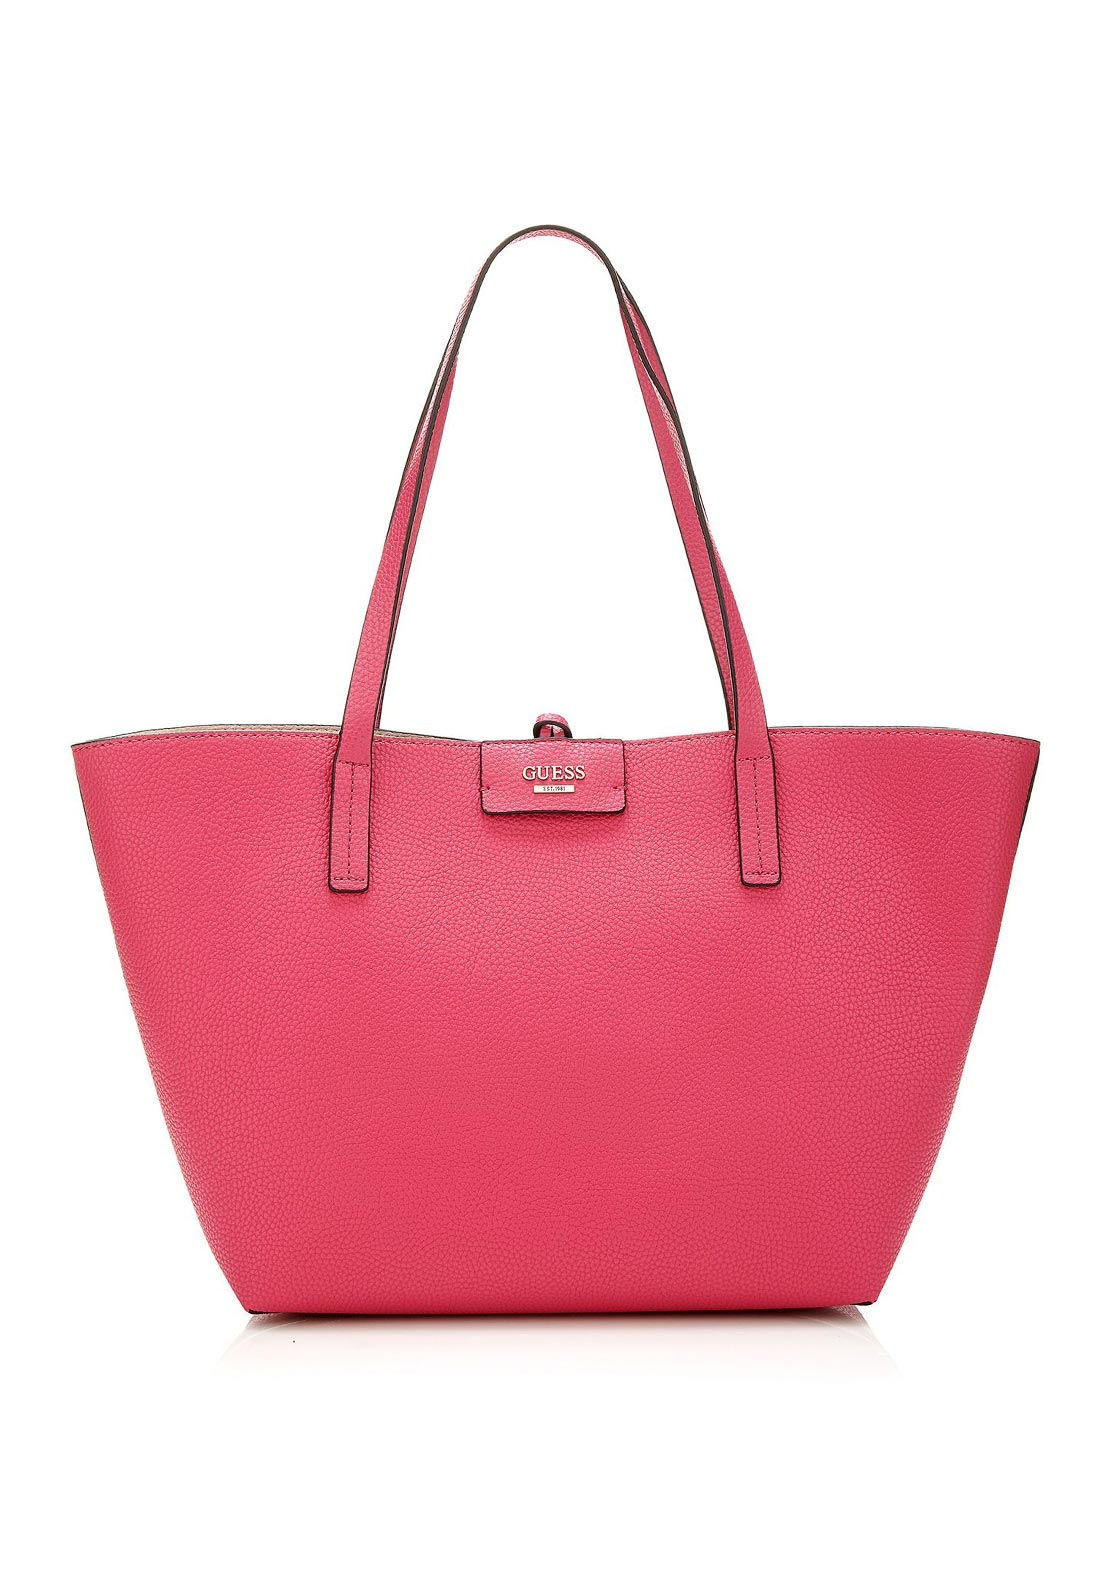 Guess Bobbi Reversible Tote Bag, Passion Pink